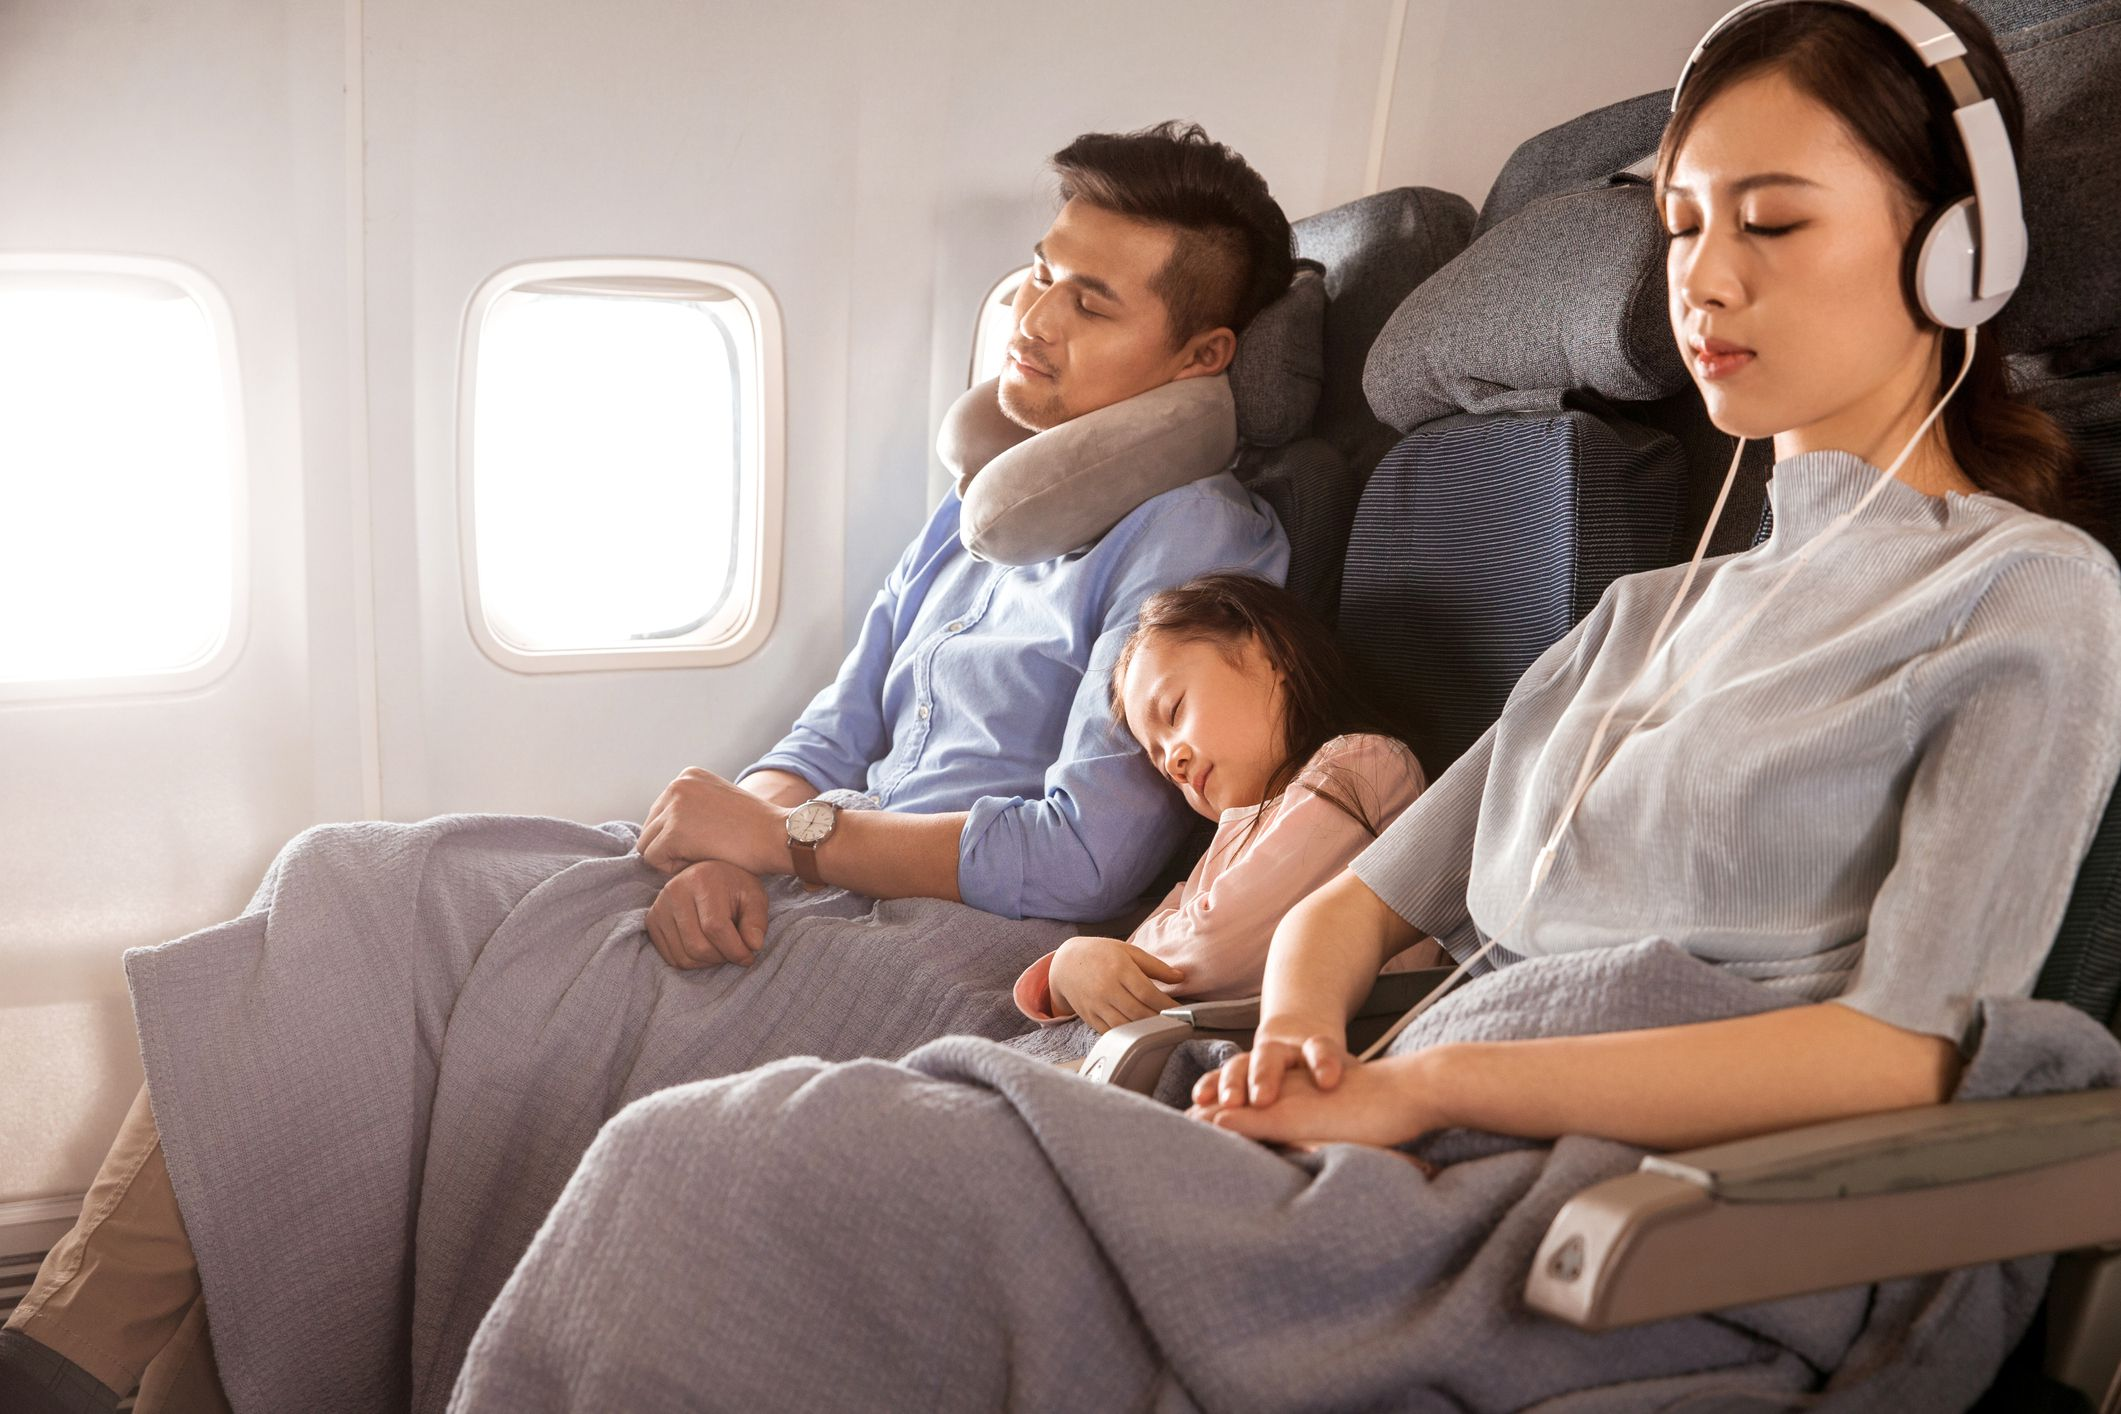 10 Long-Haul Flight Survival Tips and Tricks